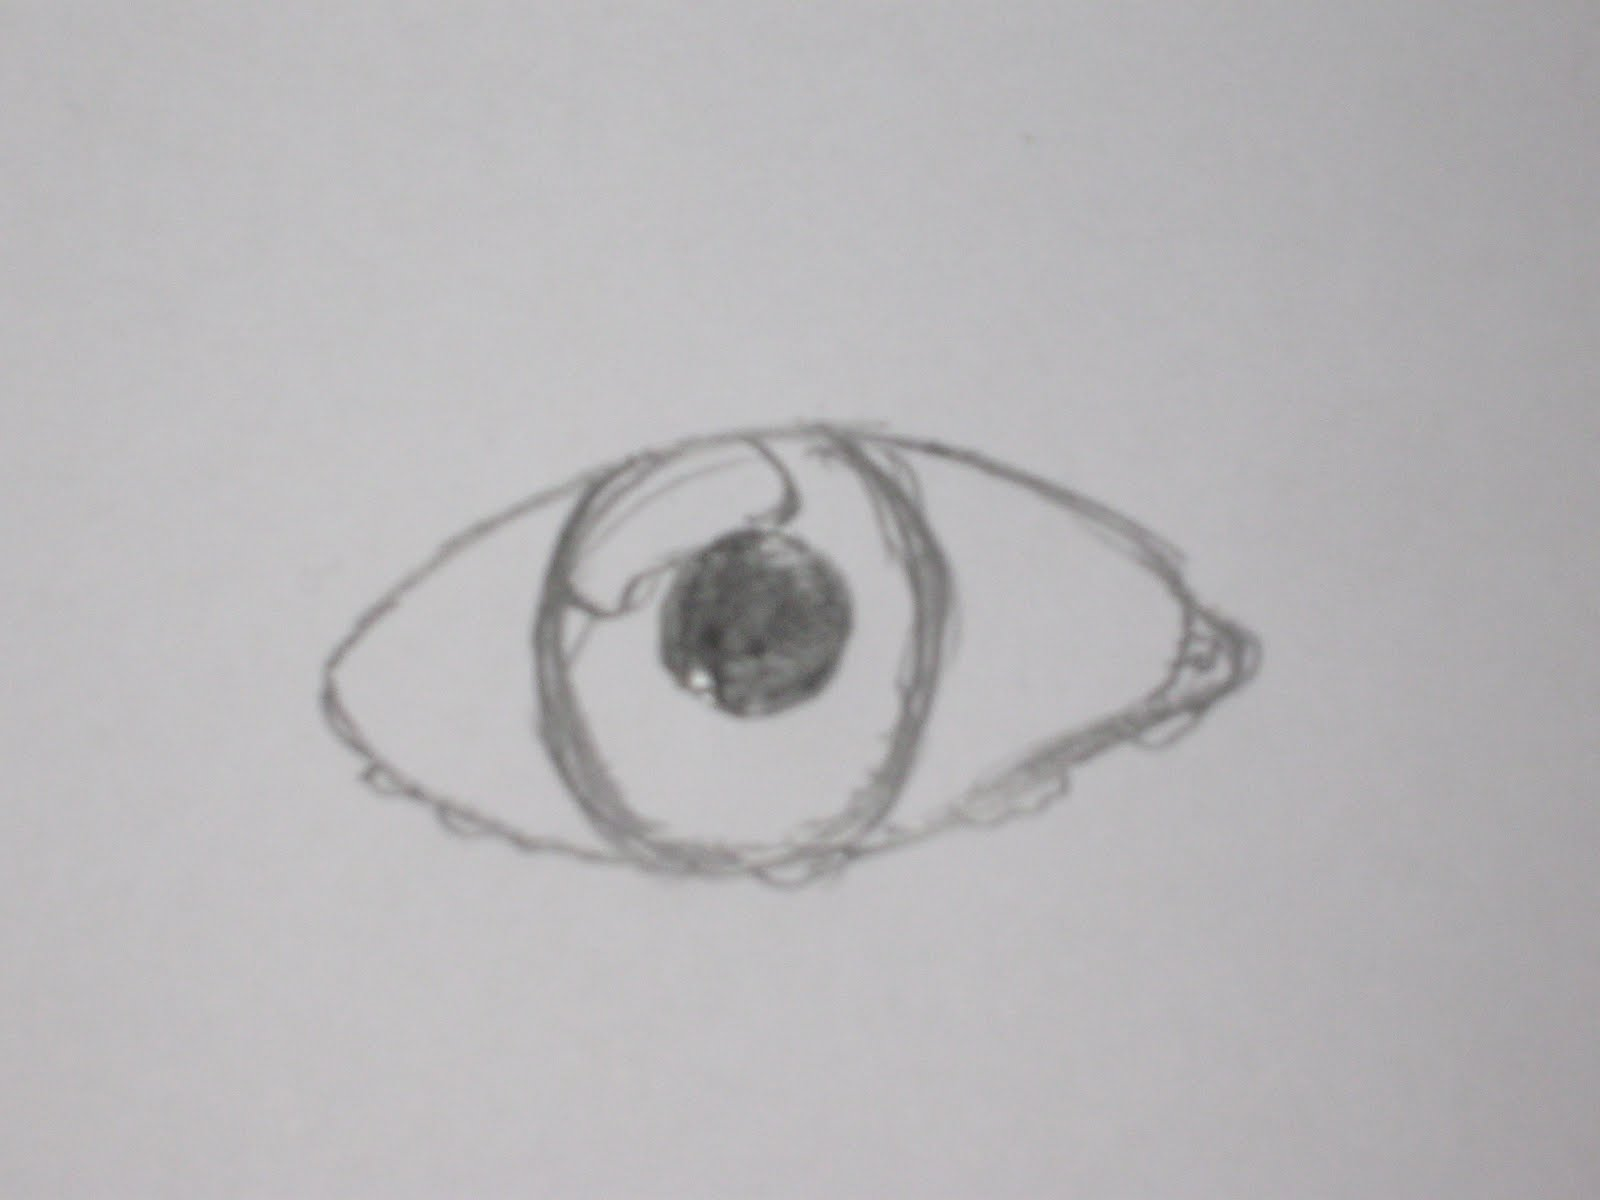 How to draw a simple human eye